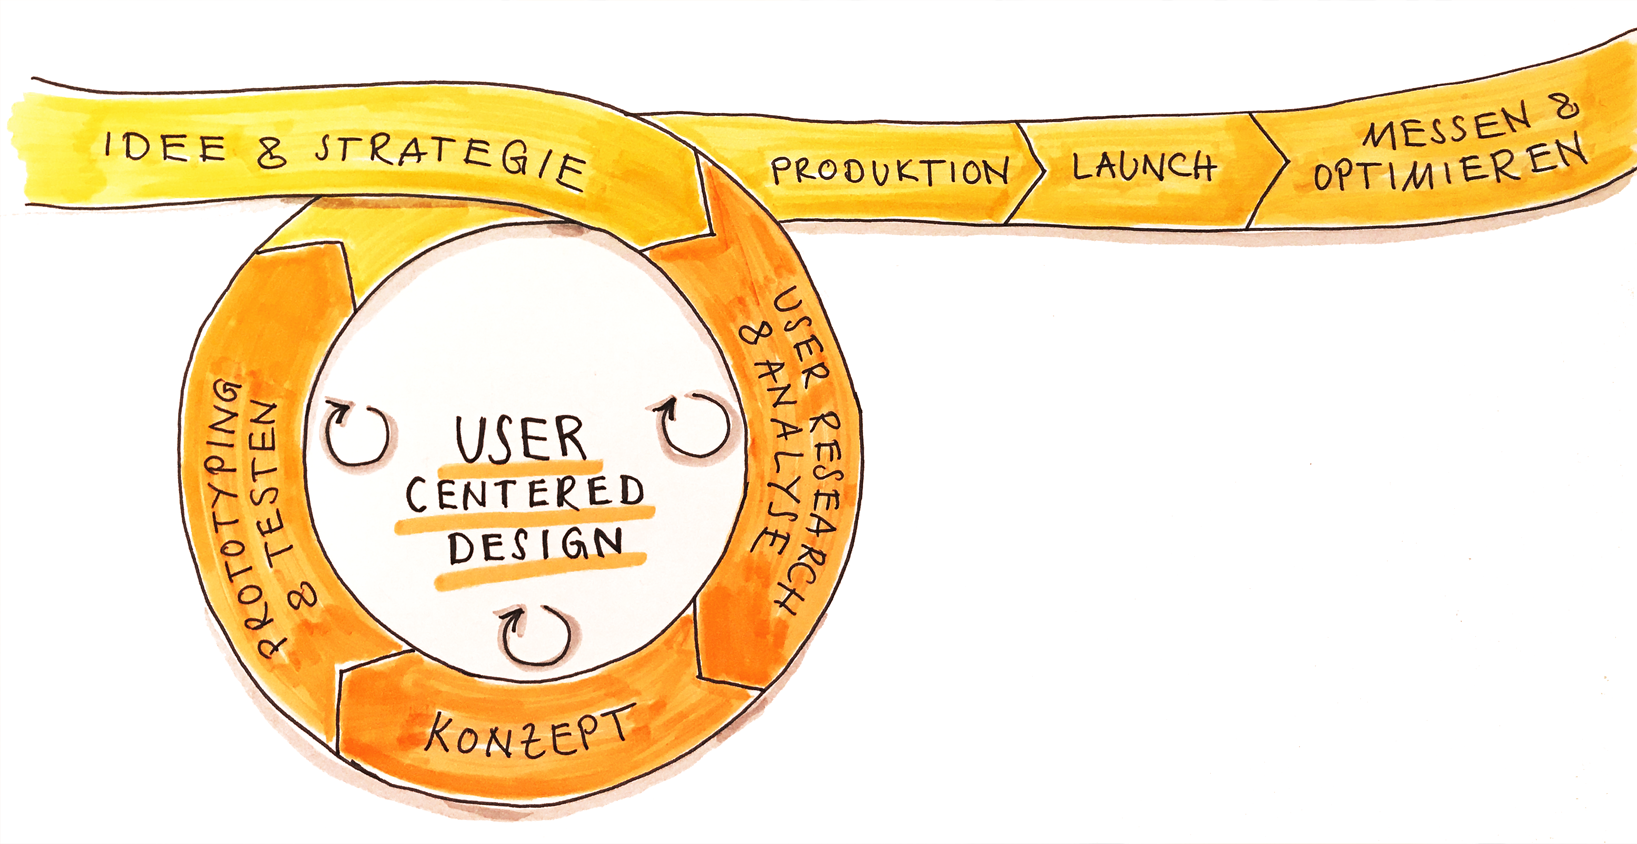 Prozessgrafik User-centered Design